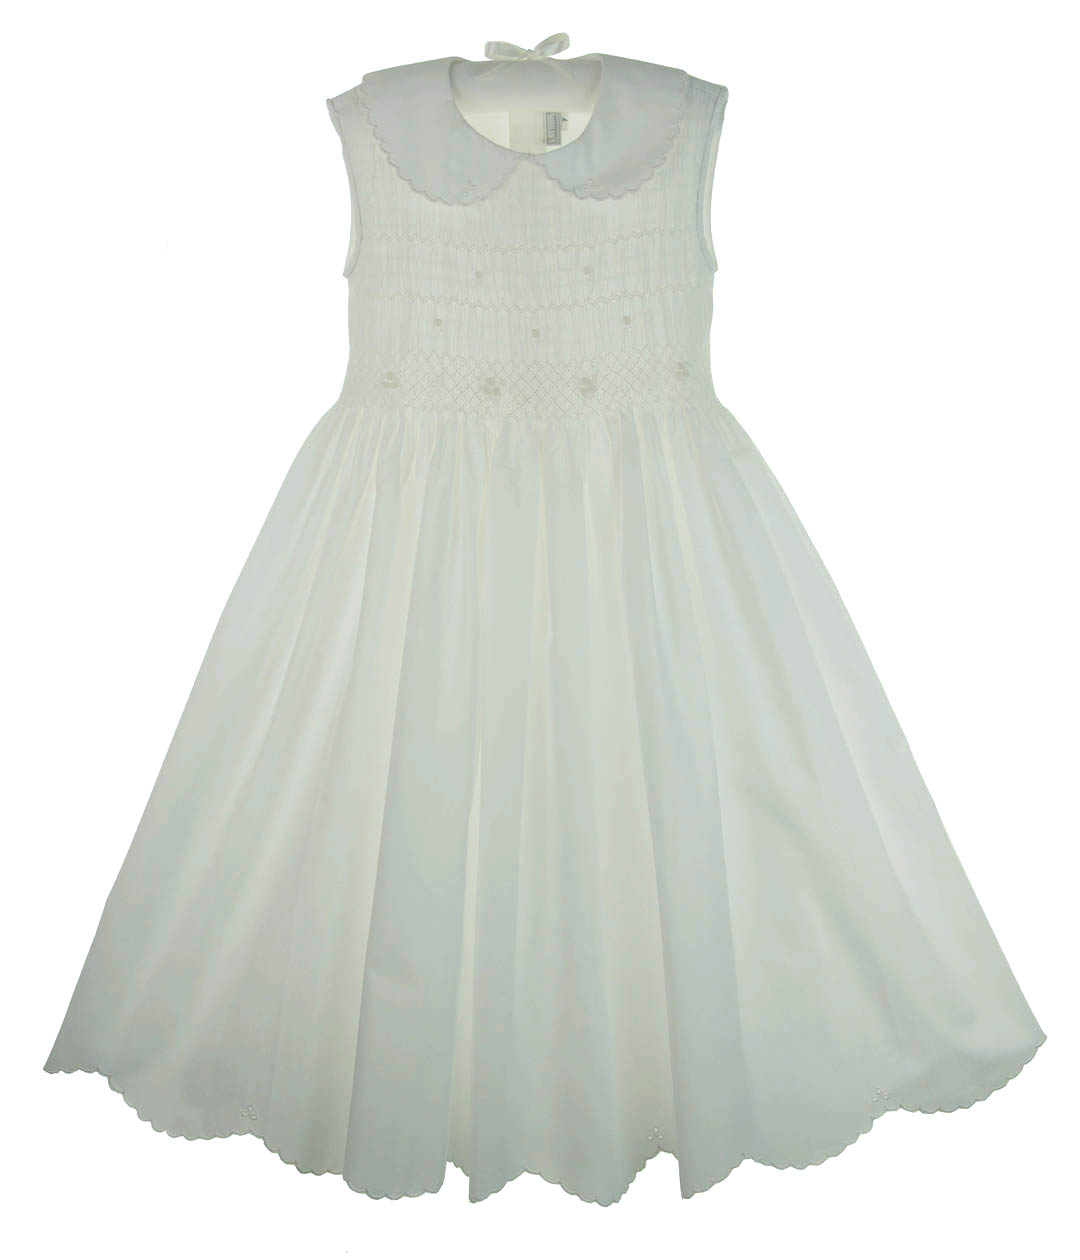 Fantaisiefantaisie kidsgirls white cotton dresswhite cotton click to enlarge mightylinksfo